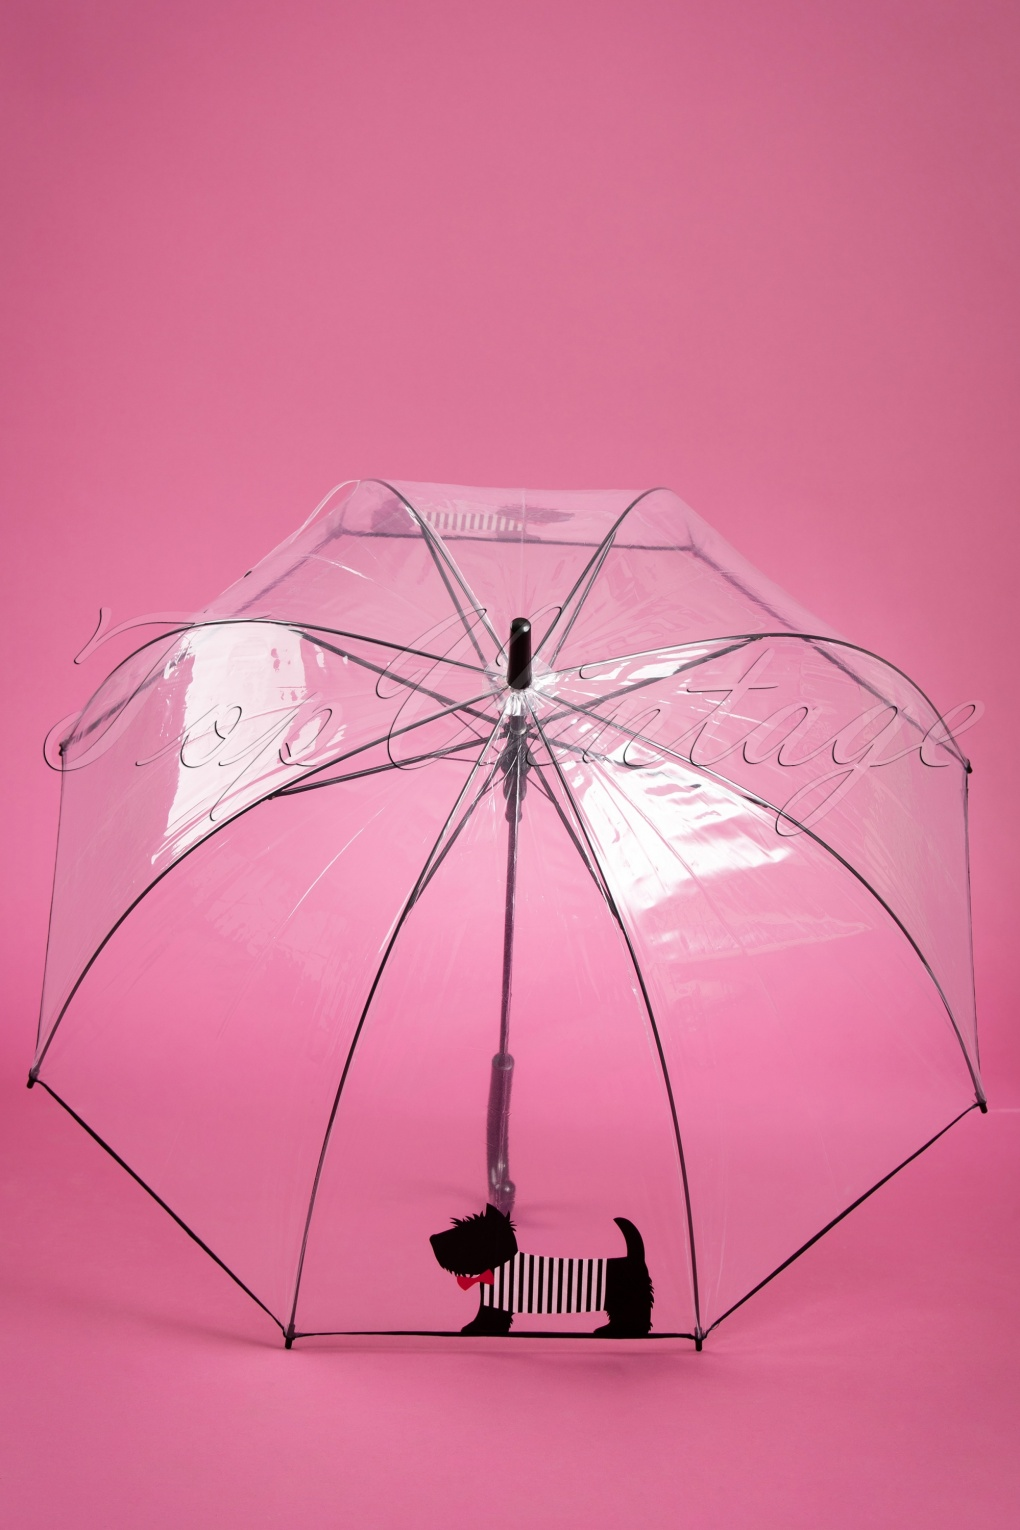 Vintage Style Parasols and Umbrellas 50s Scottie Dog Transparent Dome Umbrella £15.72 AT vintagedancer.com